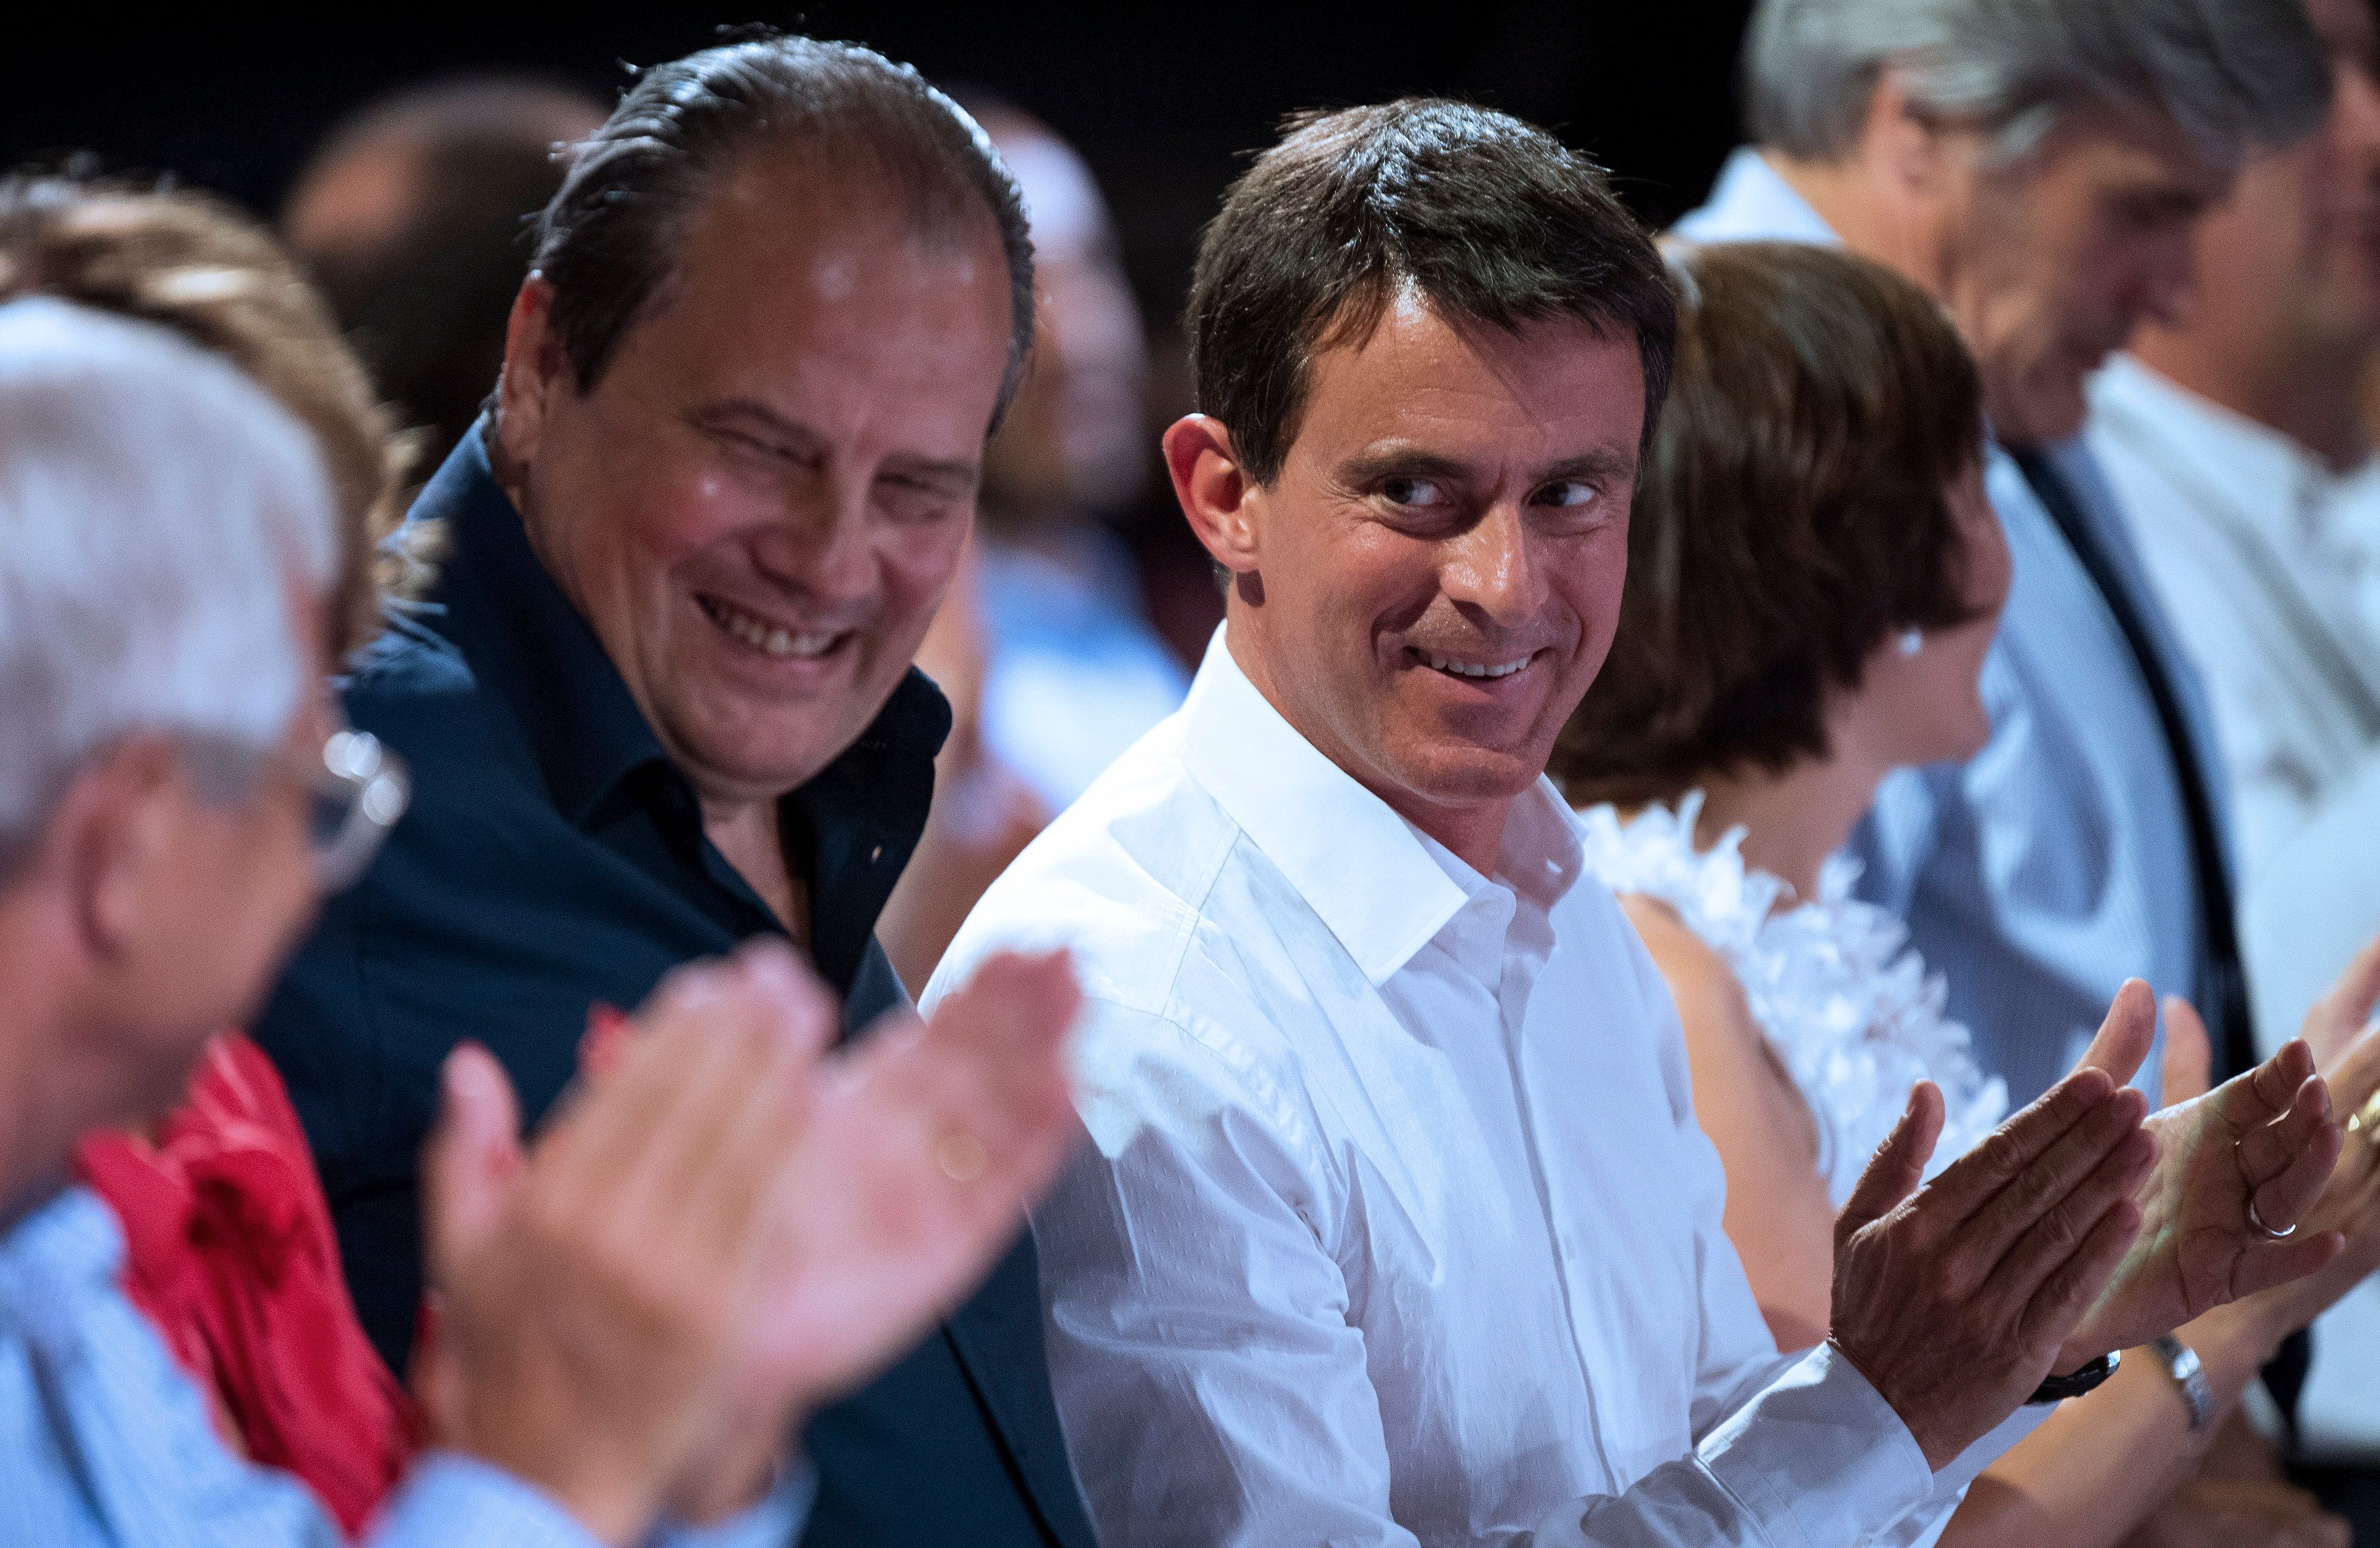 French Socialist Party members including Prime Minister Manuel Valls (R) and Socialist Party secretary Jean-Christophe Cambadelis attend a meeting in Colomiers near Toulouse, France, August 29, 2016. REUTERS/Fred Lancelot